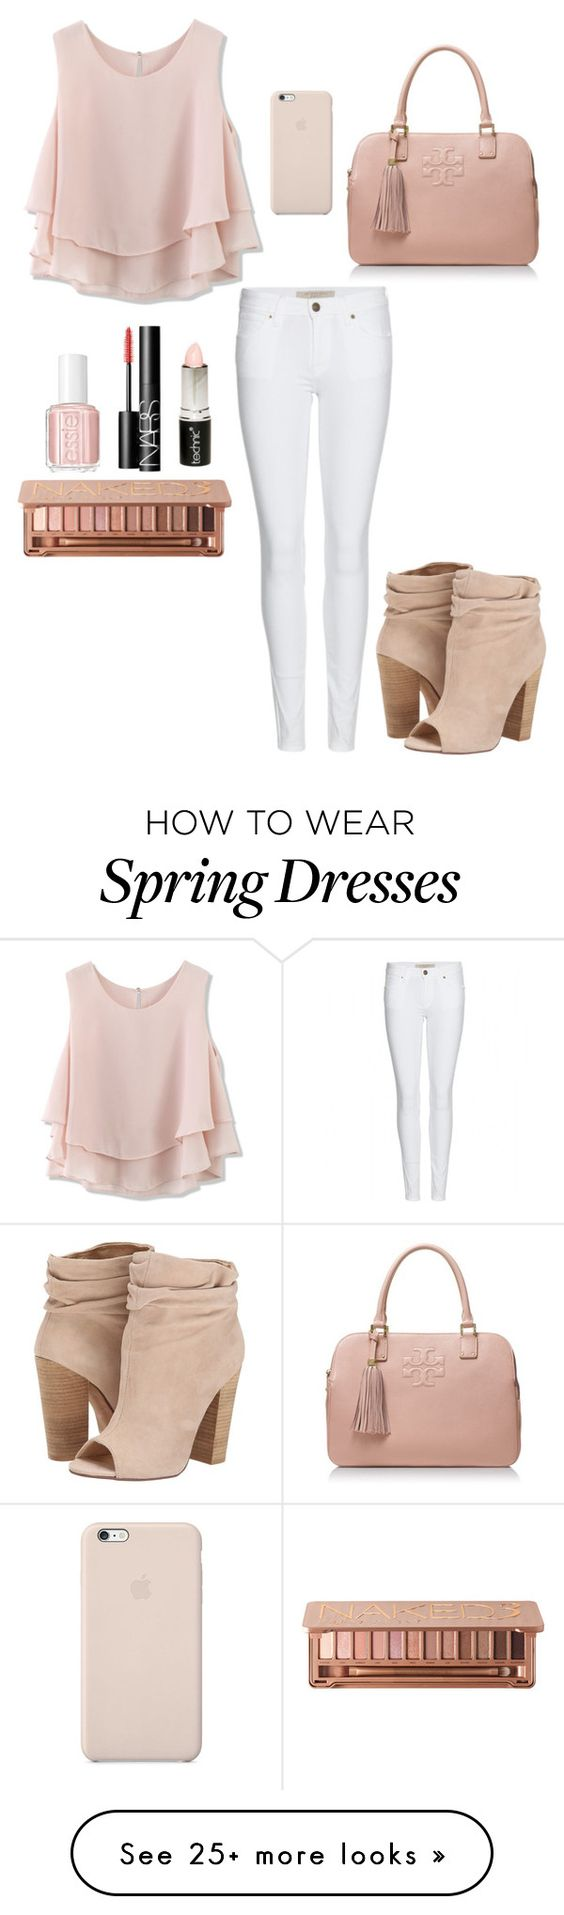 """""""pretty in pink"""" by graceg372 on Polyvore featuring Chicwish, Urban Decay, Boohoo, NARS Cosmetics, Black Apple, Essie, Tory Burch, Burberry and Chinese Laundry"""